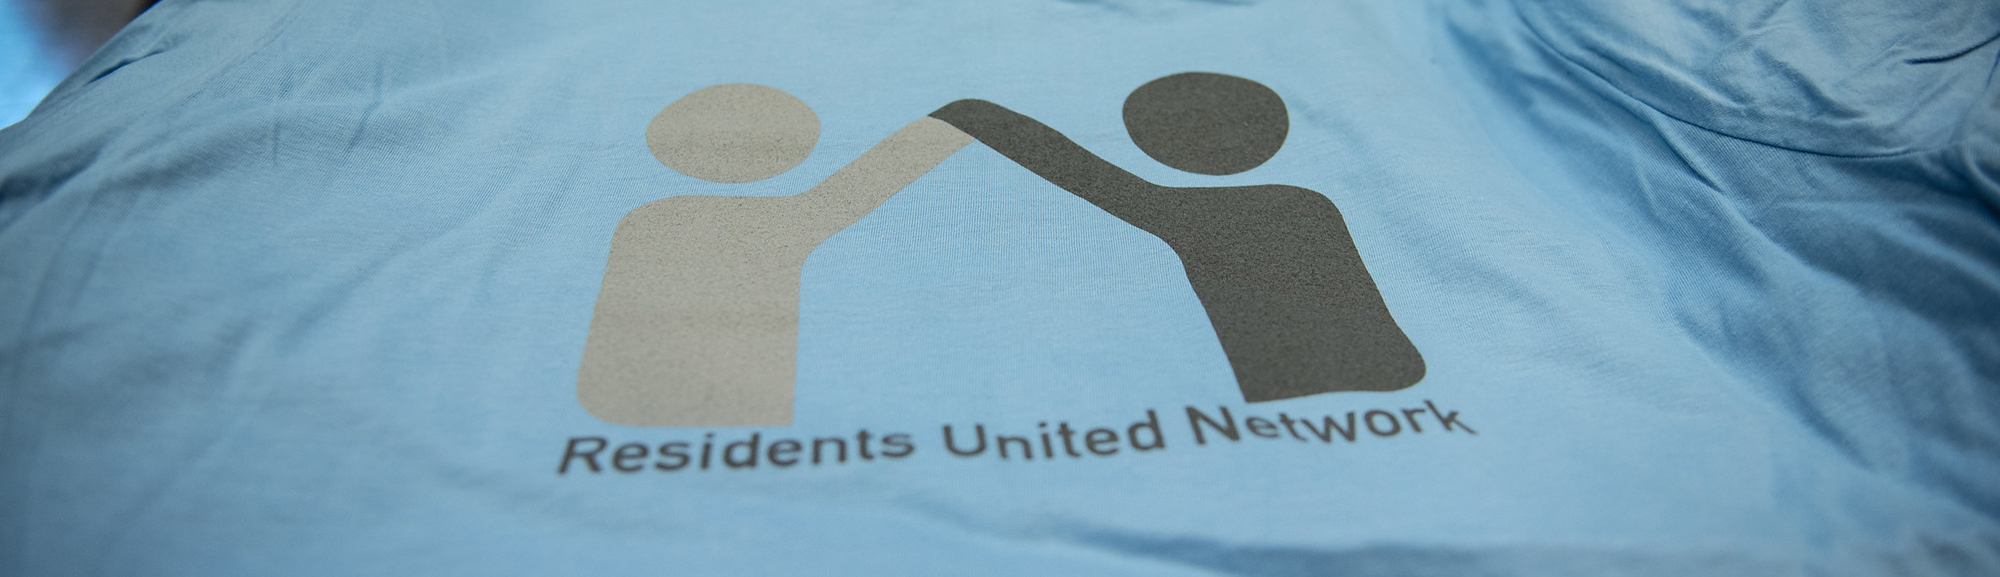 A close-up of a light blue t-shirt with Residents United Network printed on the front.